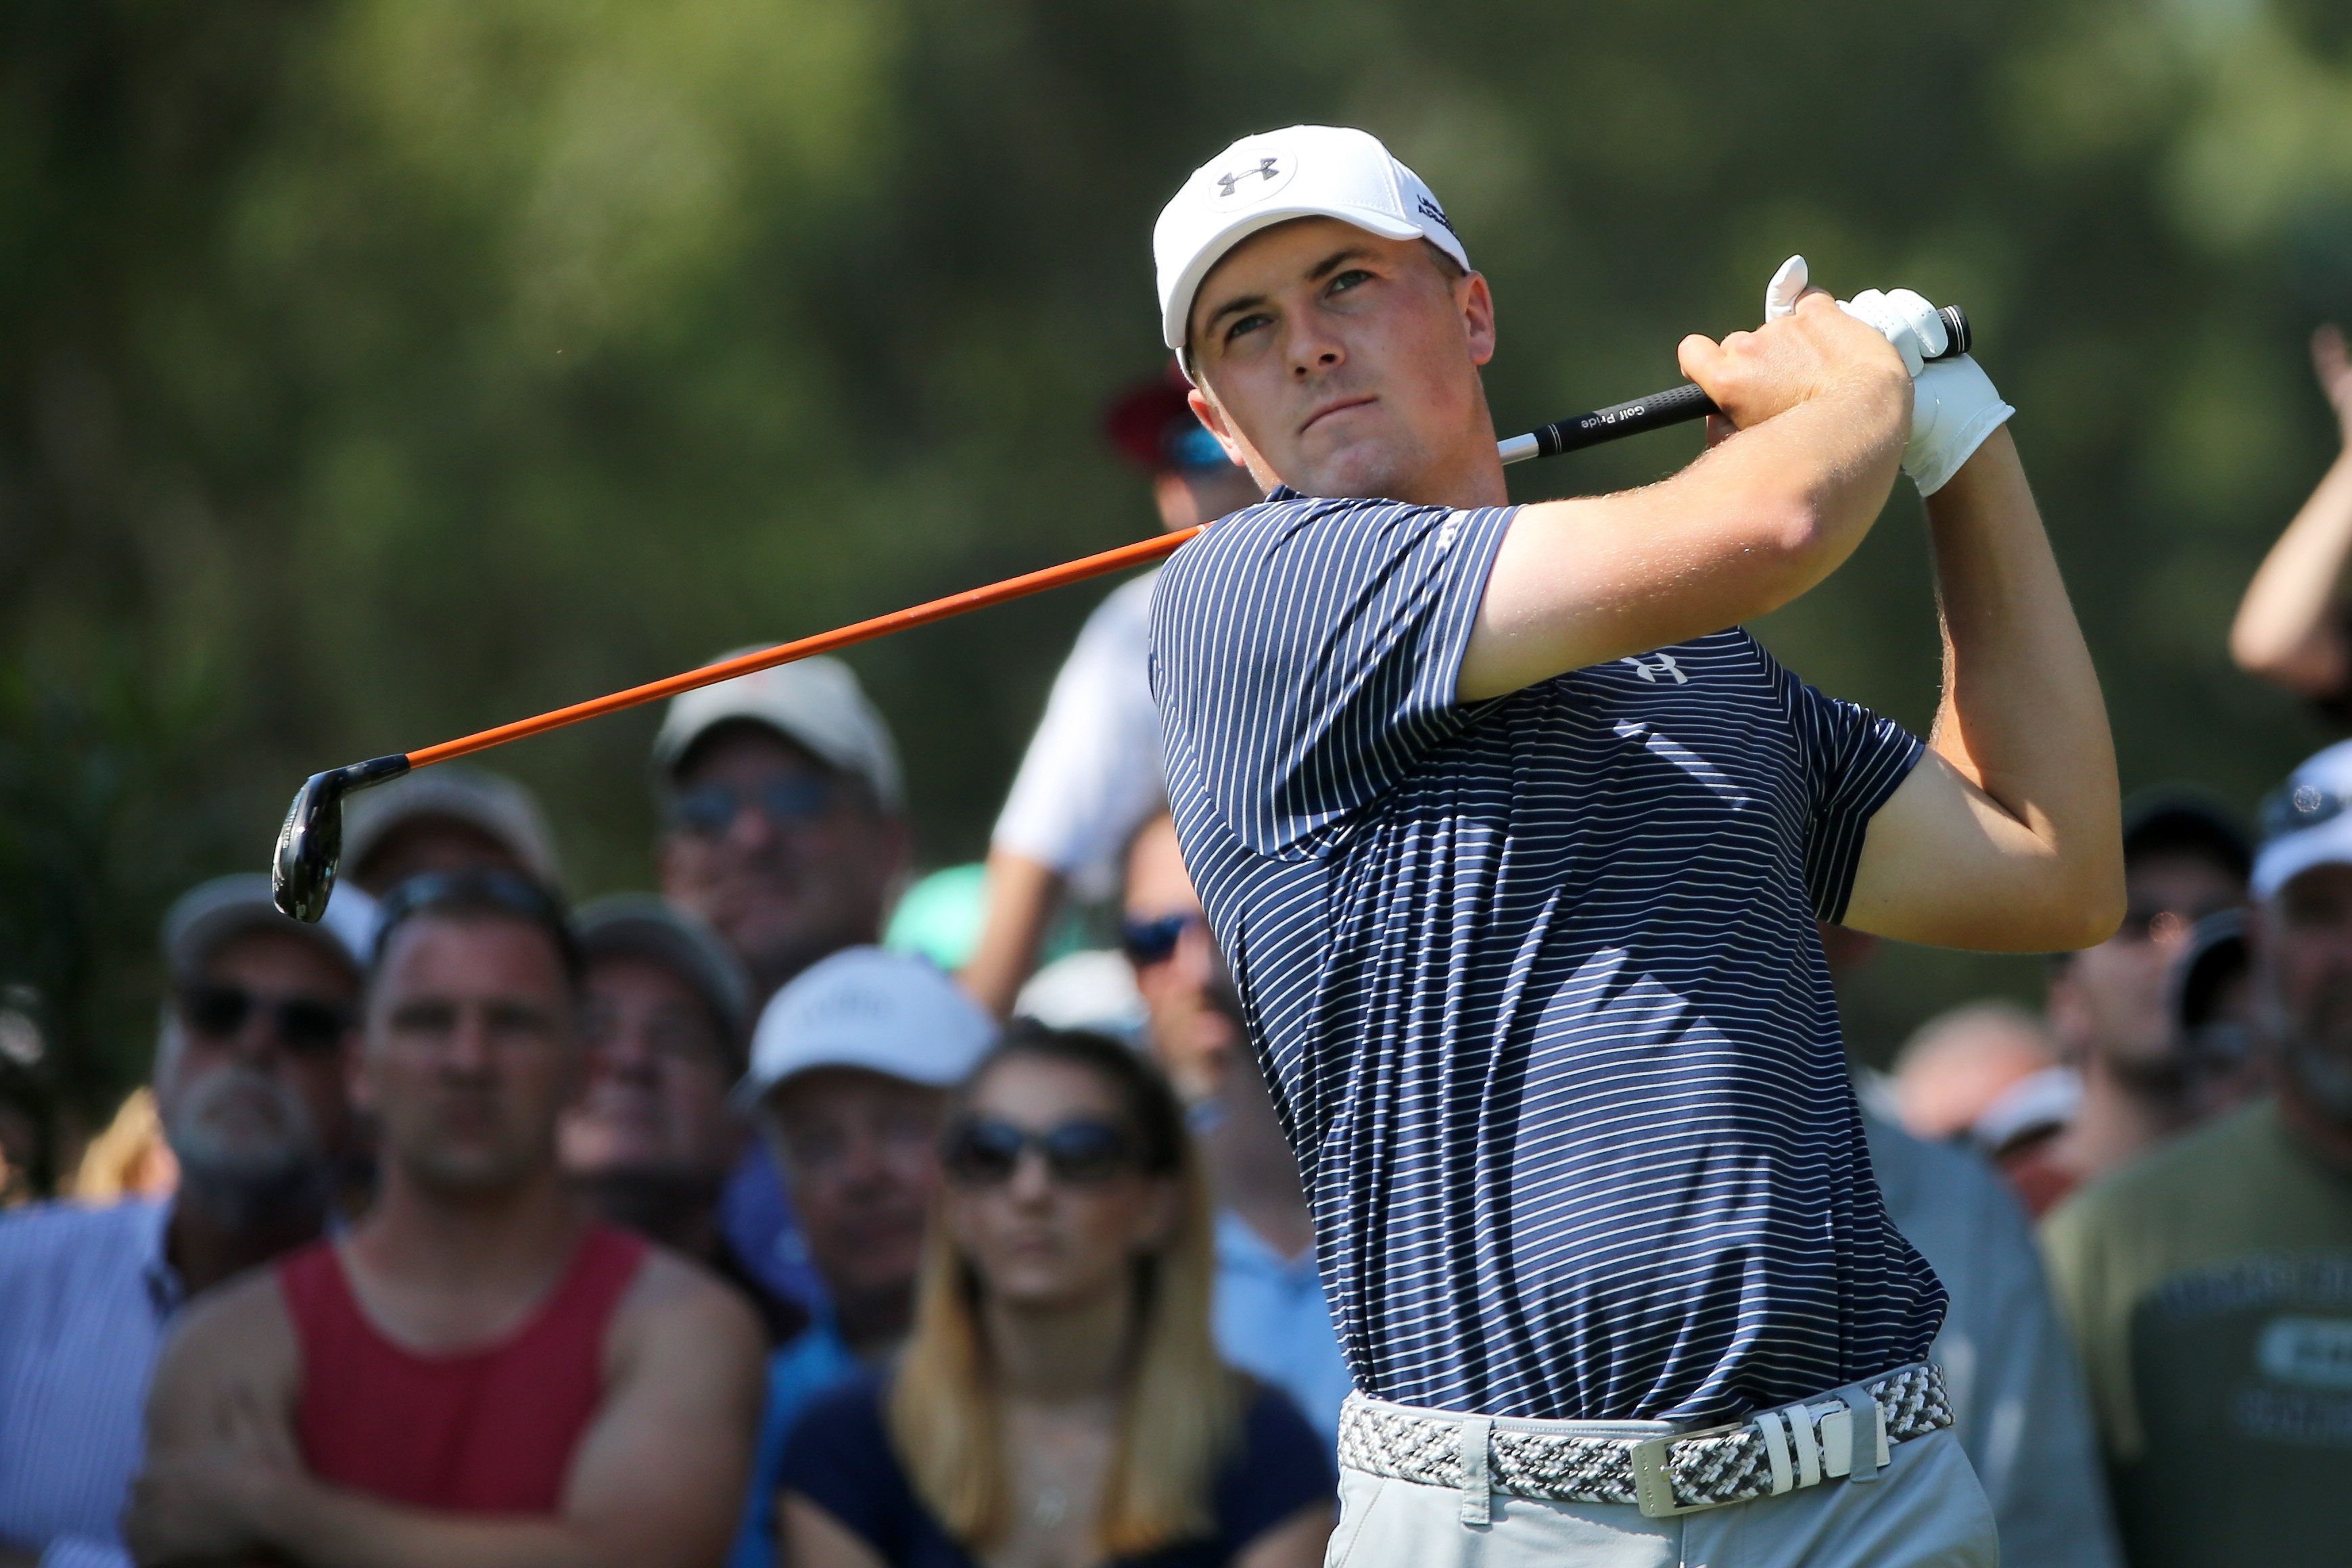 Jordan Spieth watches a tee shot during the final round of the Valspar Championship at Innisbrook Resort Copperhead Course Sunday in Palm Harbor, Florida. Spieth won on the third playoff hole.